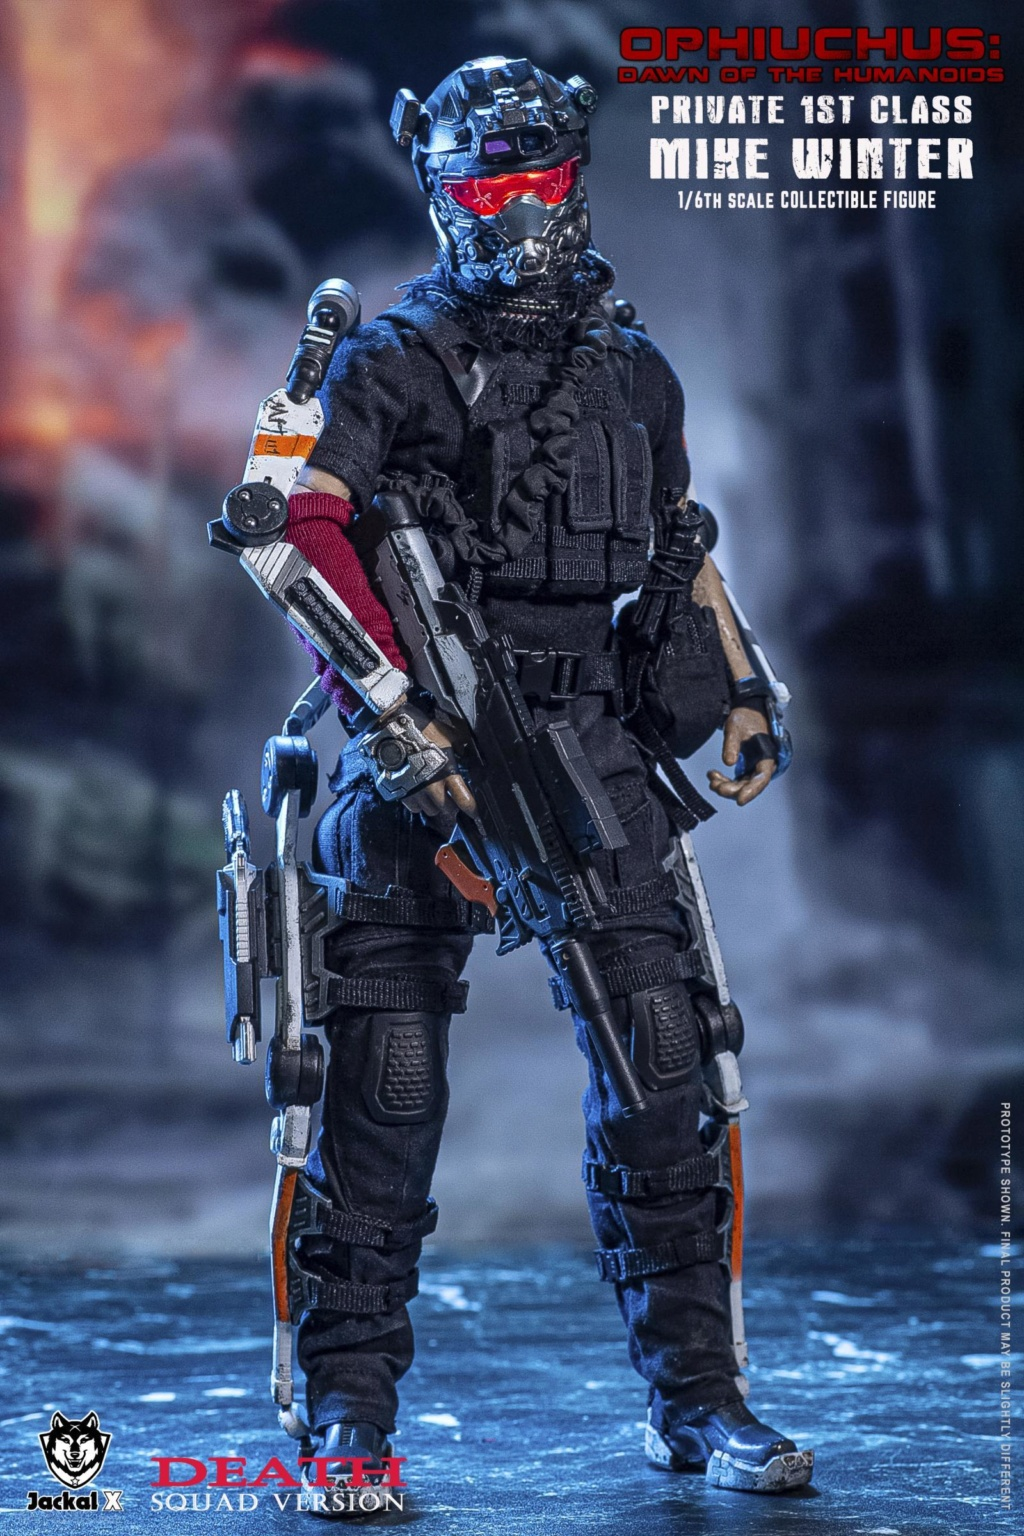 male - NEW PRODUCT: JackalX: 1/6 Ophiuchus: Dawn of Humanoid: Private 1st Class Mike Winter Collectible Figure (2 Versions) 43202039